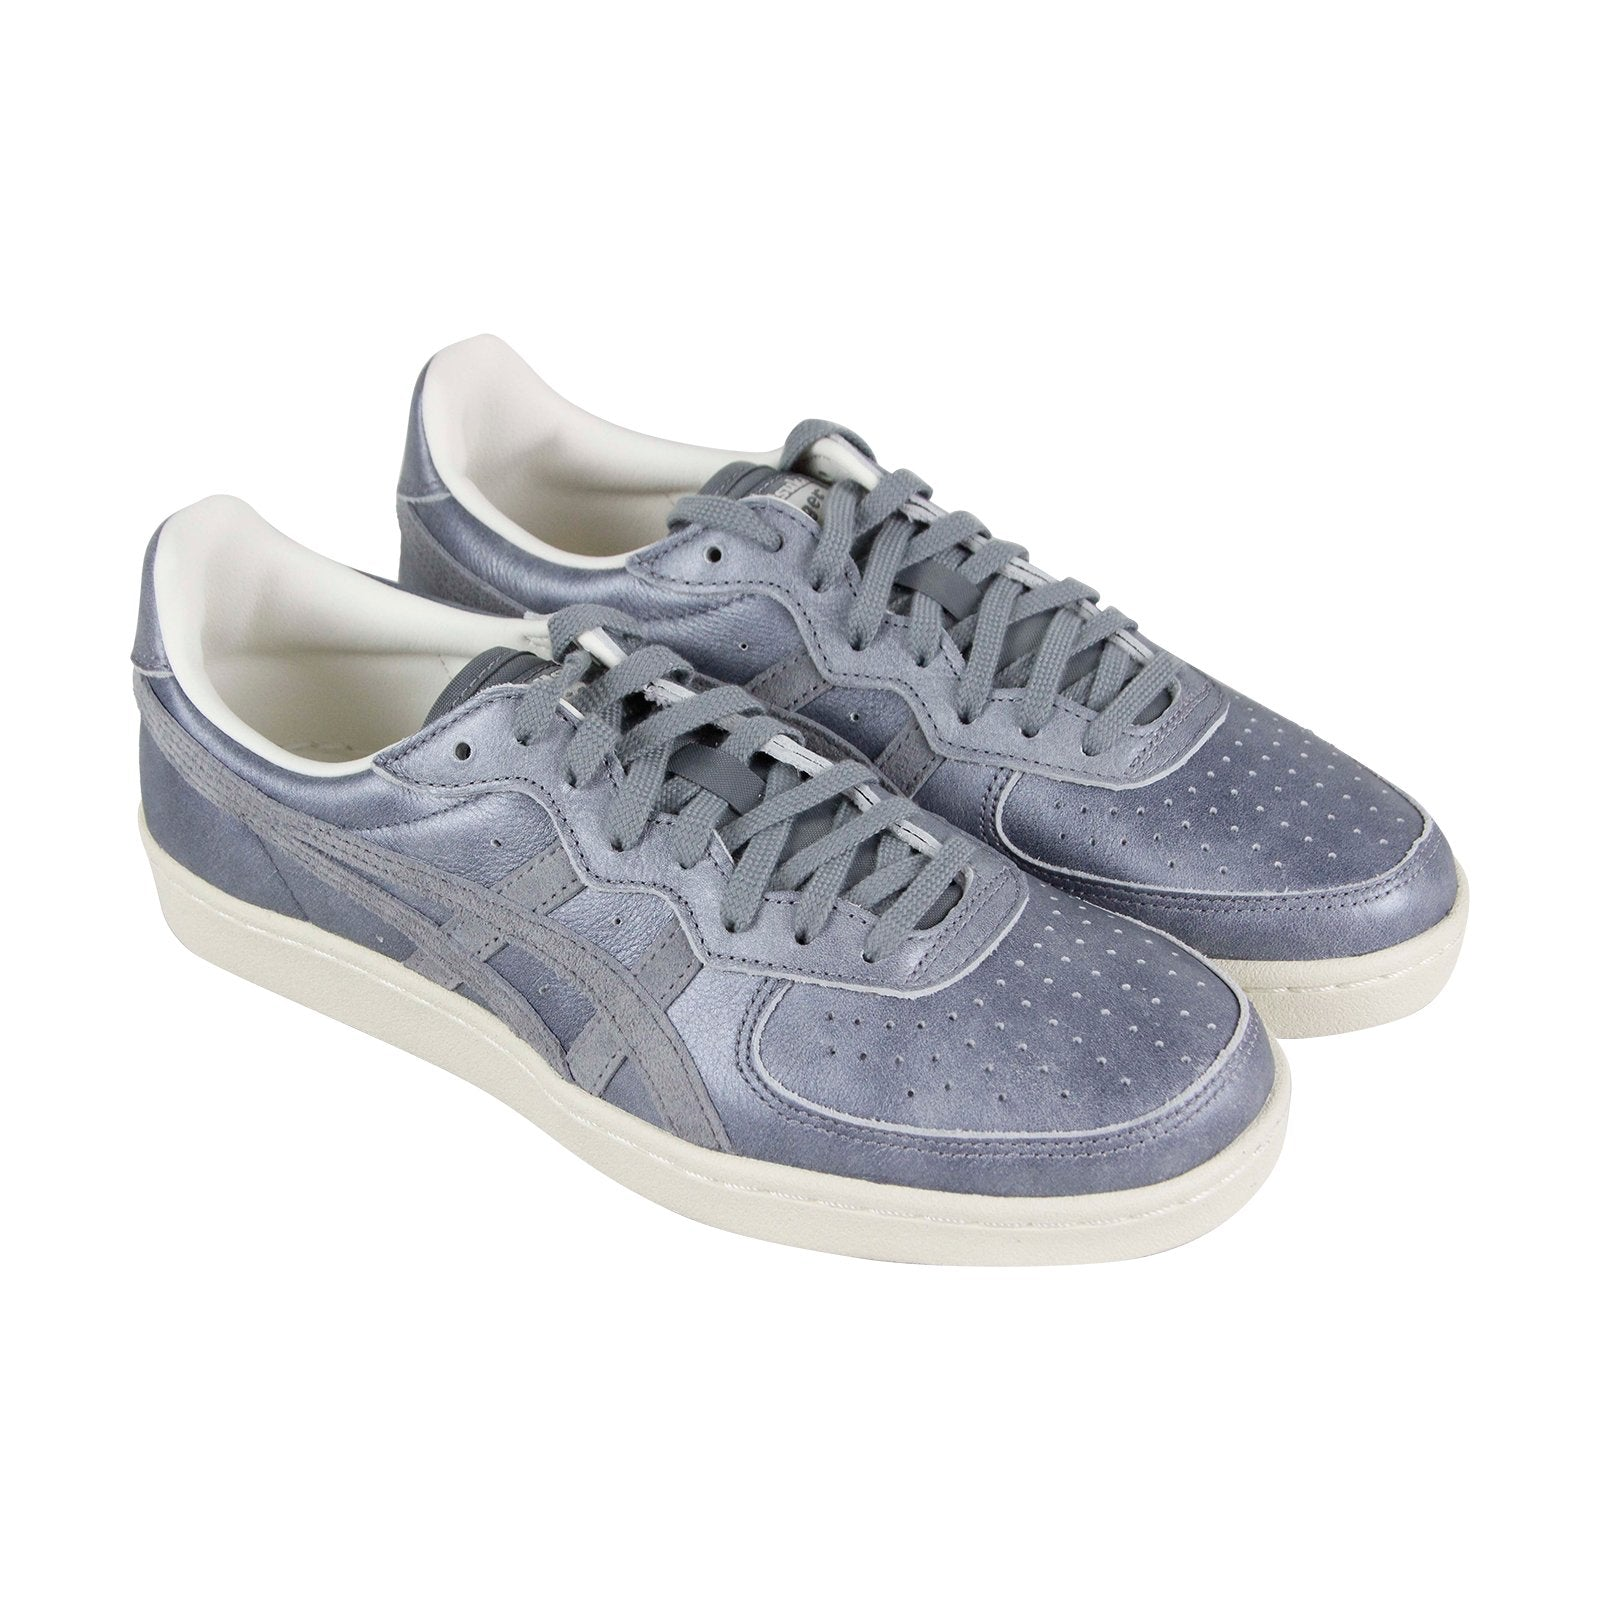 huge discount a5044 03493 Onitsuka Tiger Gsm Mens Gray Leather Sneakers Lace Up Tennis Shoes